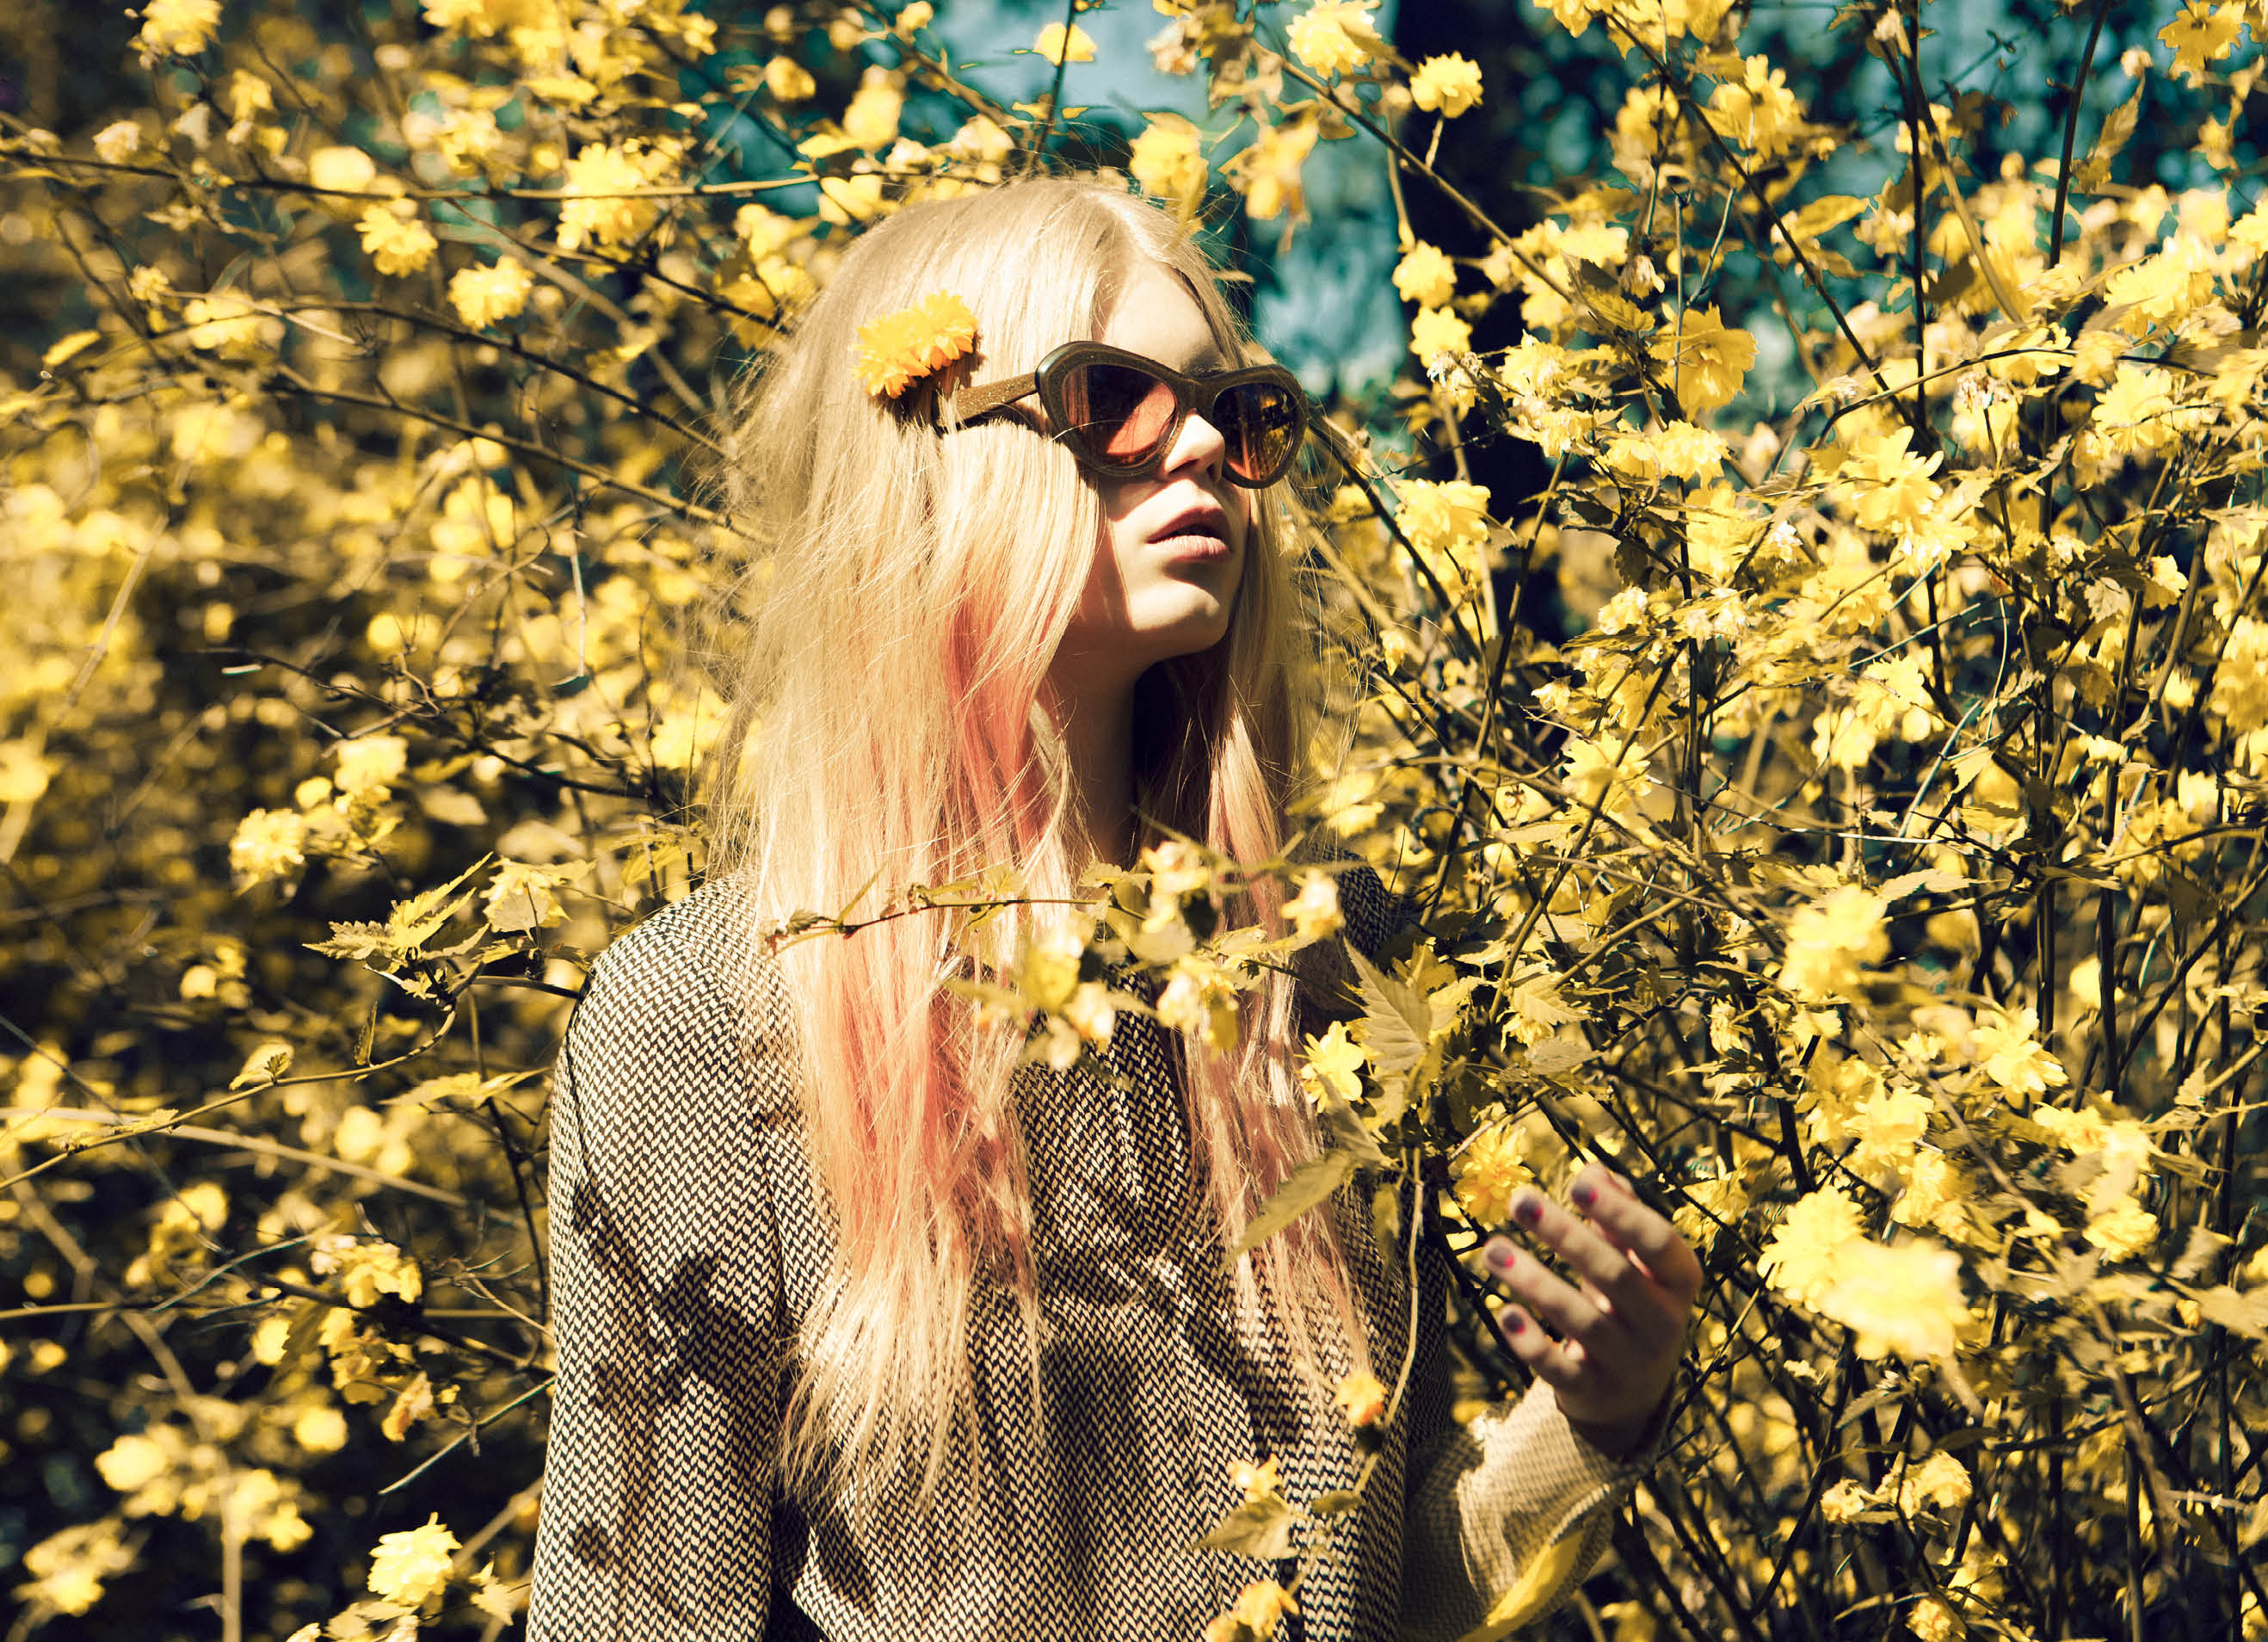 daisybutter - UK Style and Fashion Blog: three floor fashion, fashion editorial, SS12 lookbook, high summer